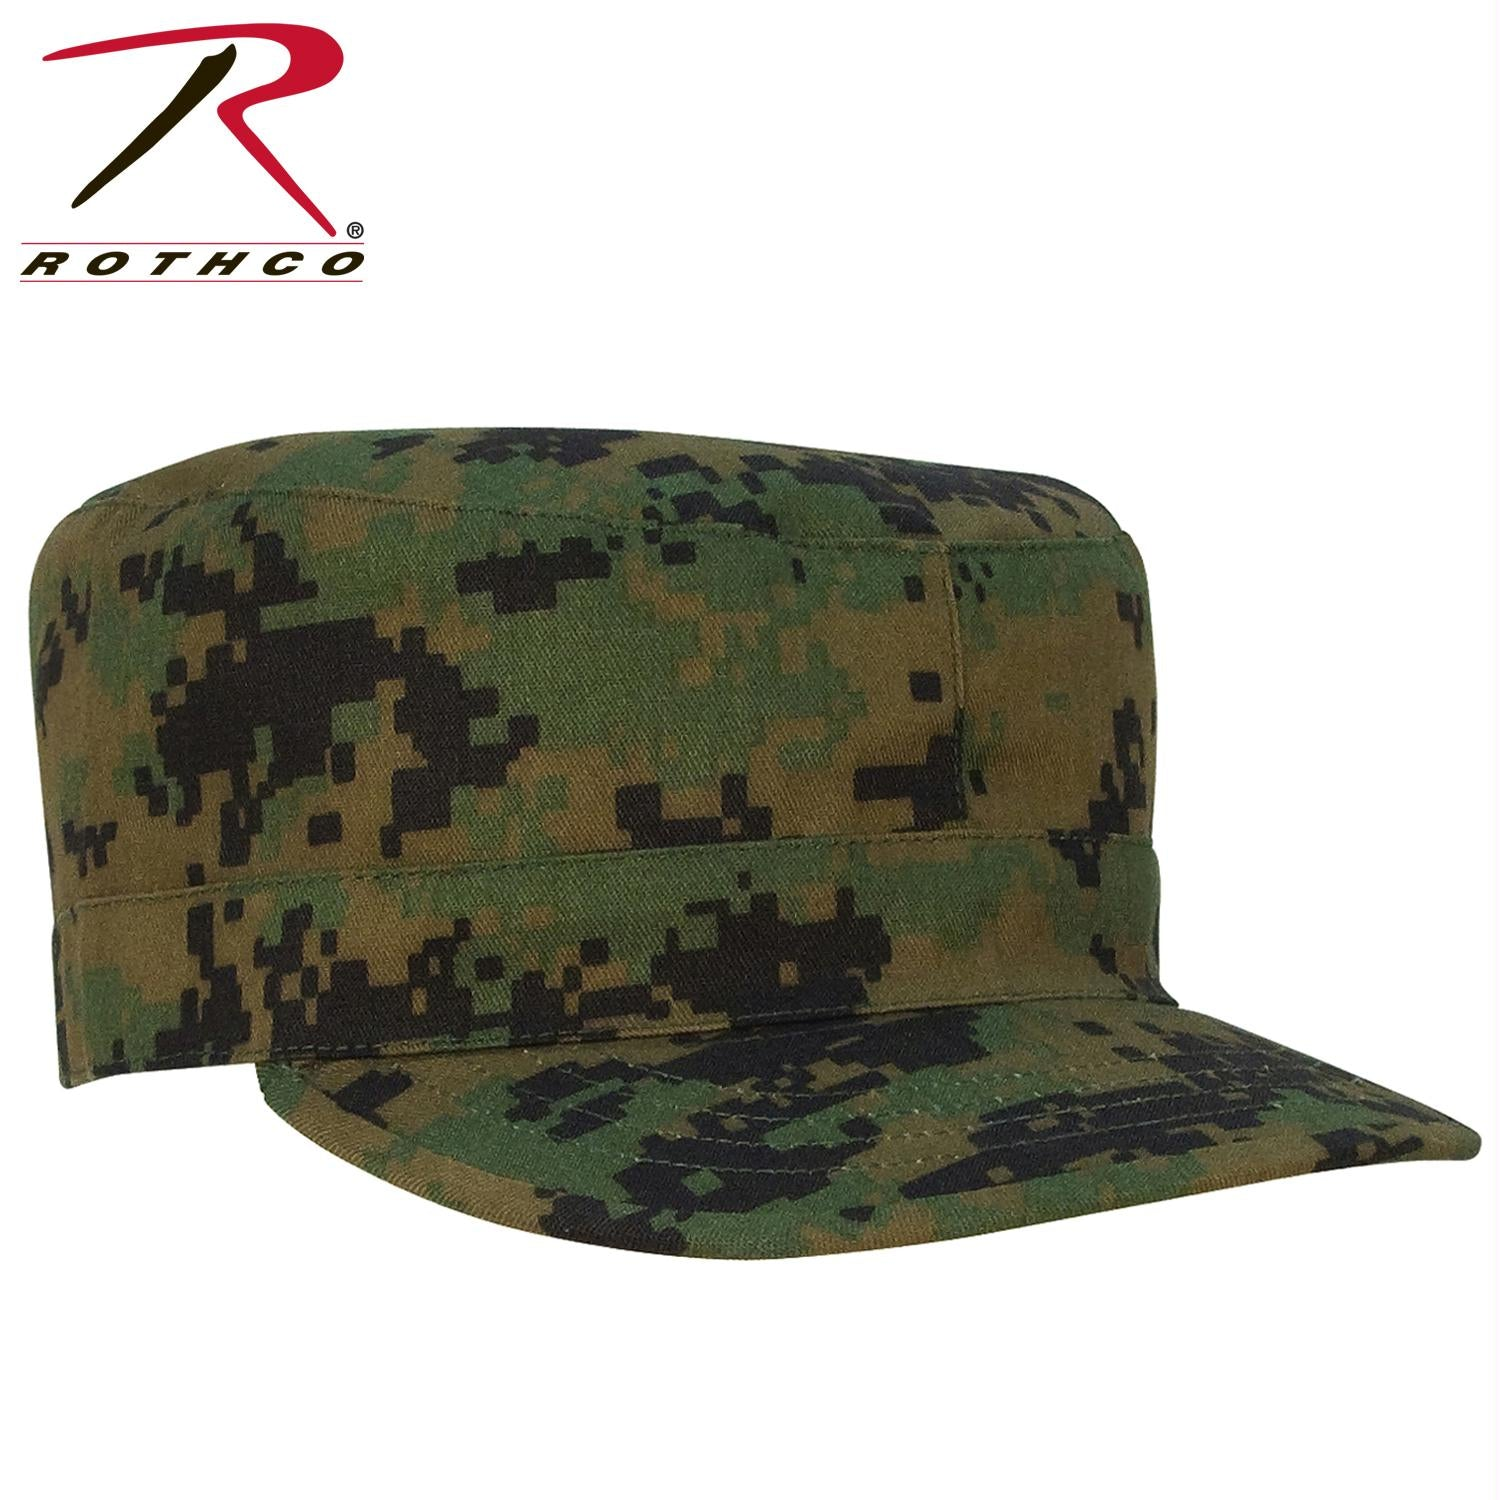 Rothco Camo Fatigue Caps - Woodland Digital Camo / L